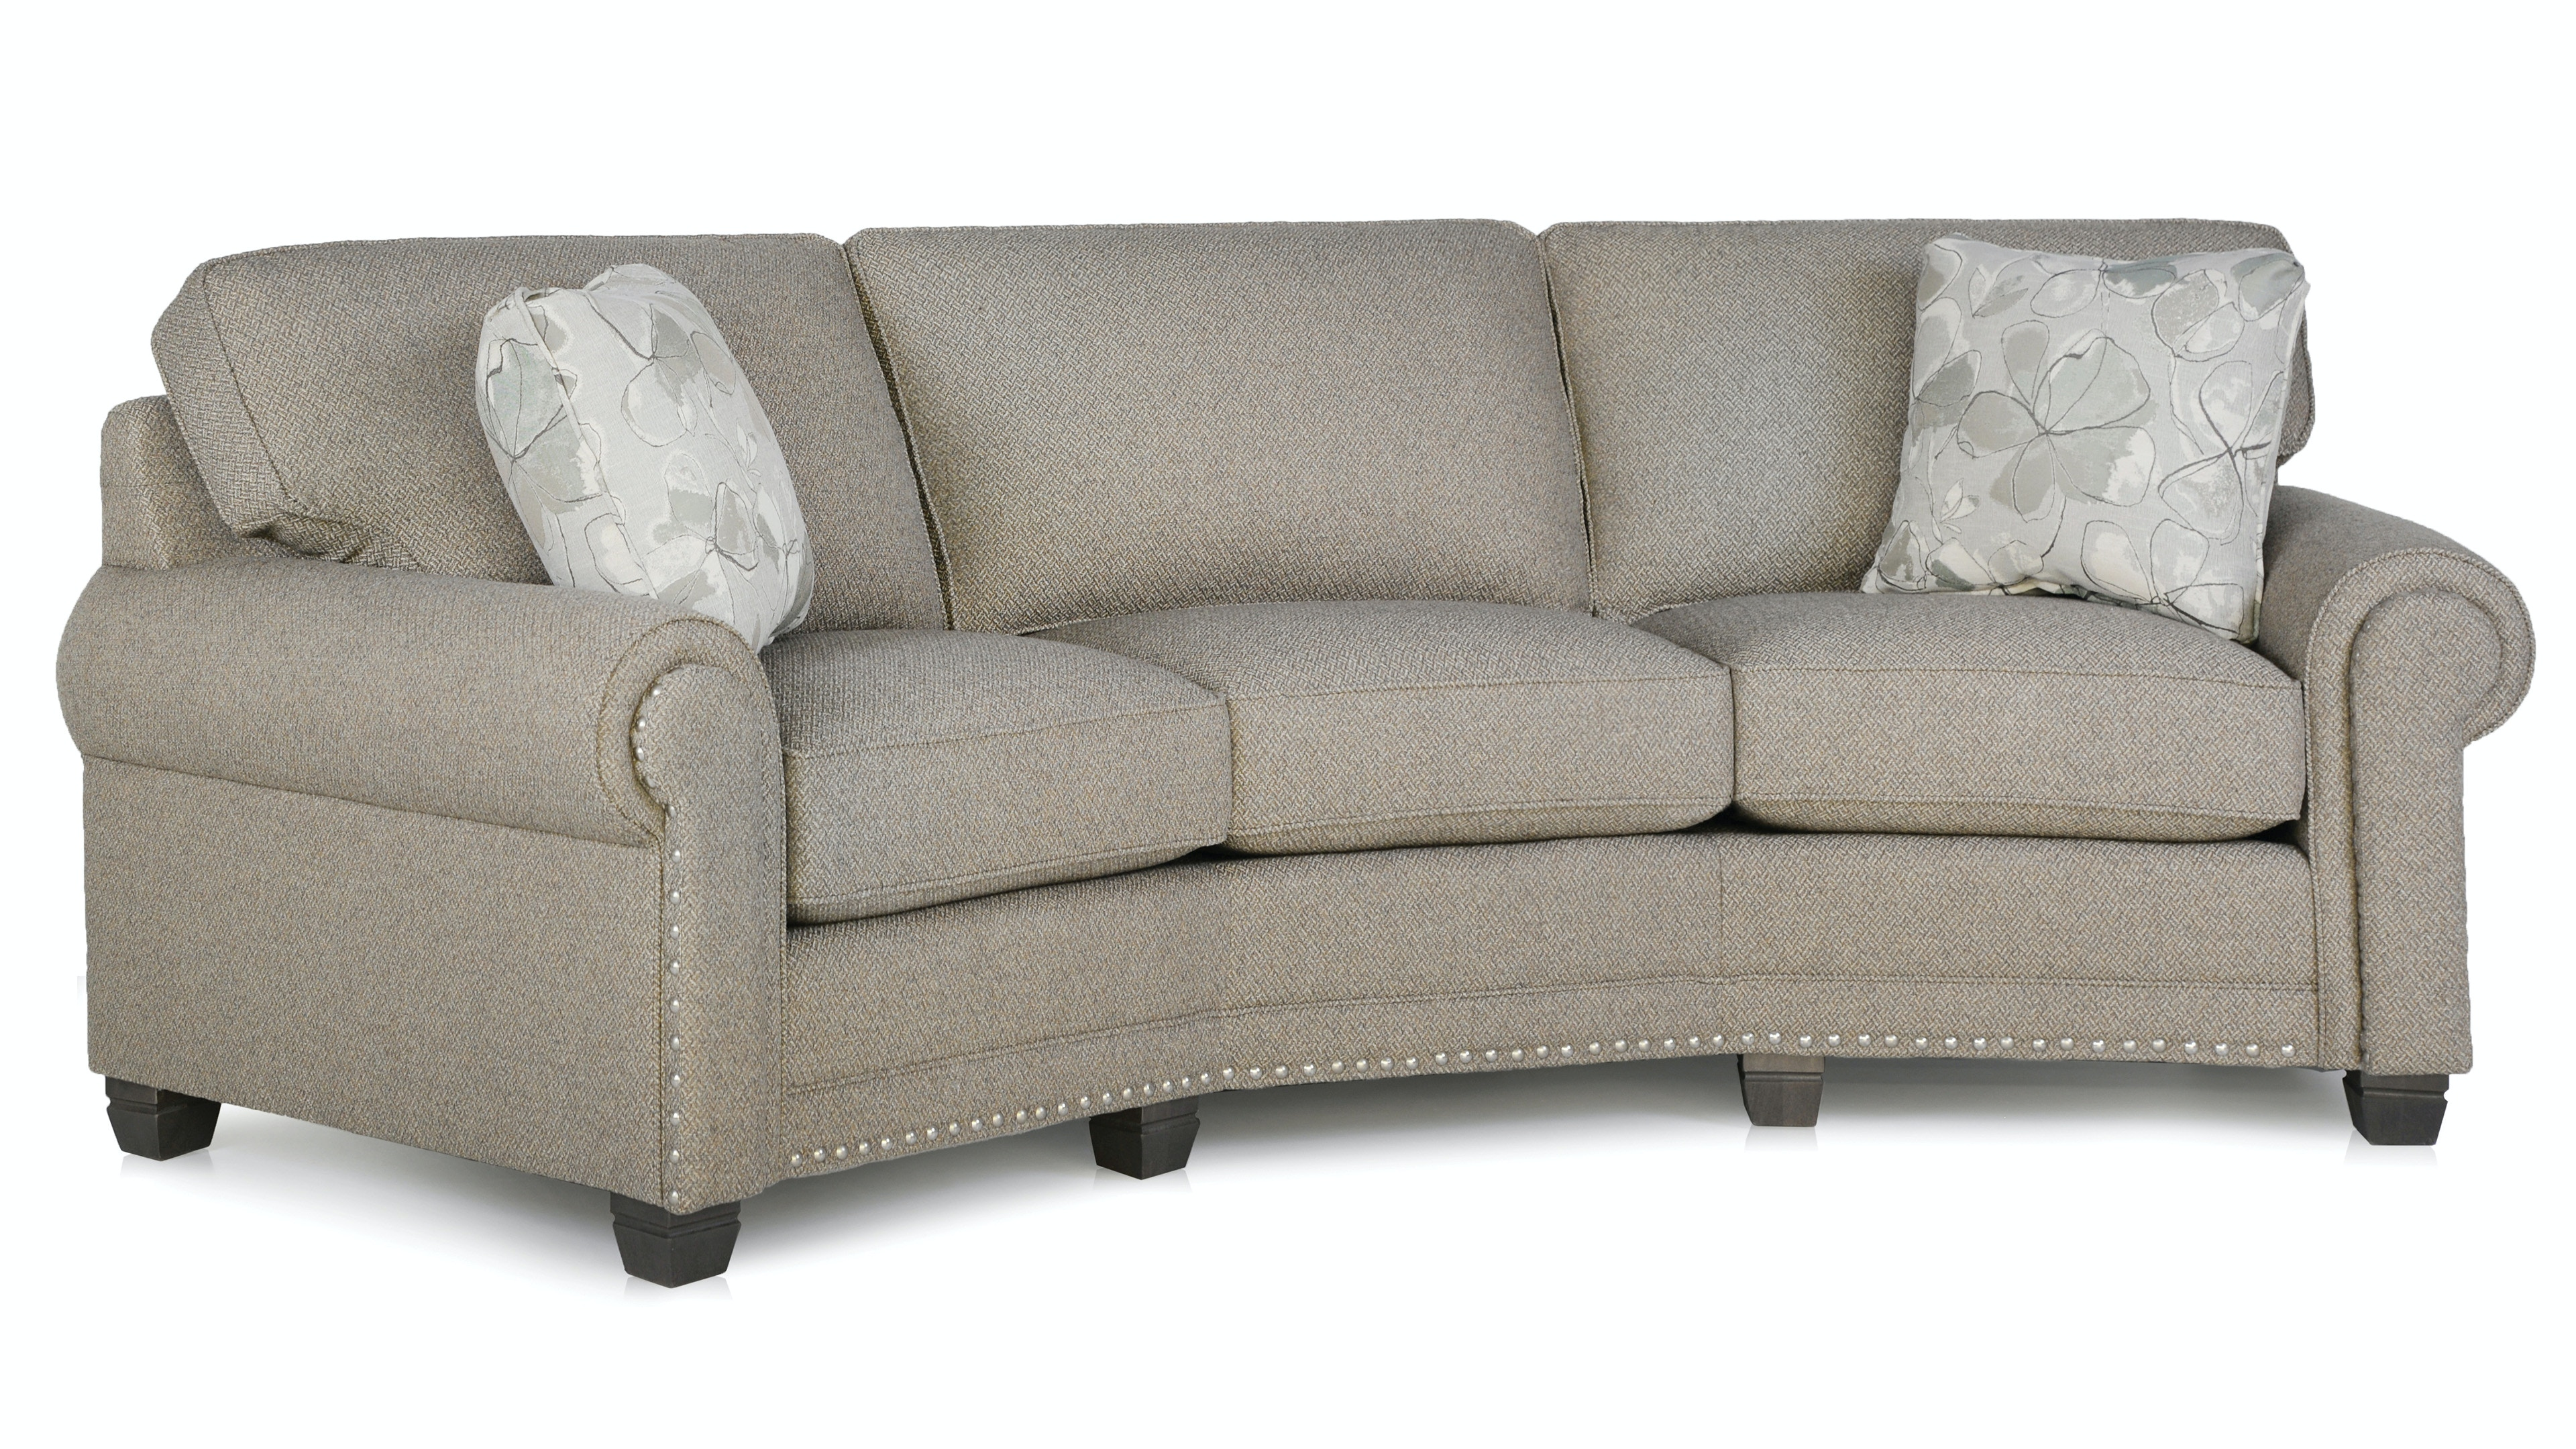 Smith Brothers Conversation Sofa 393 12